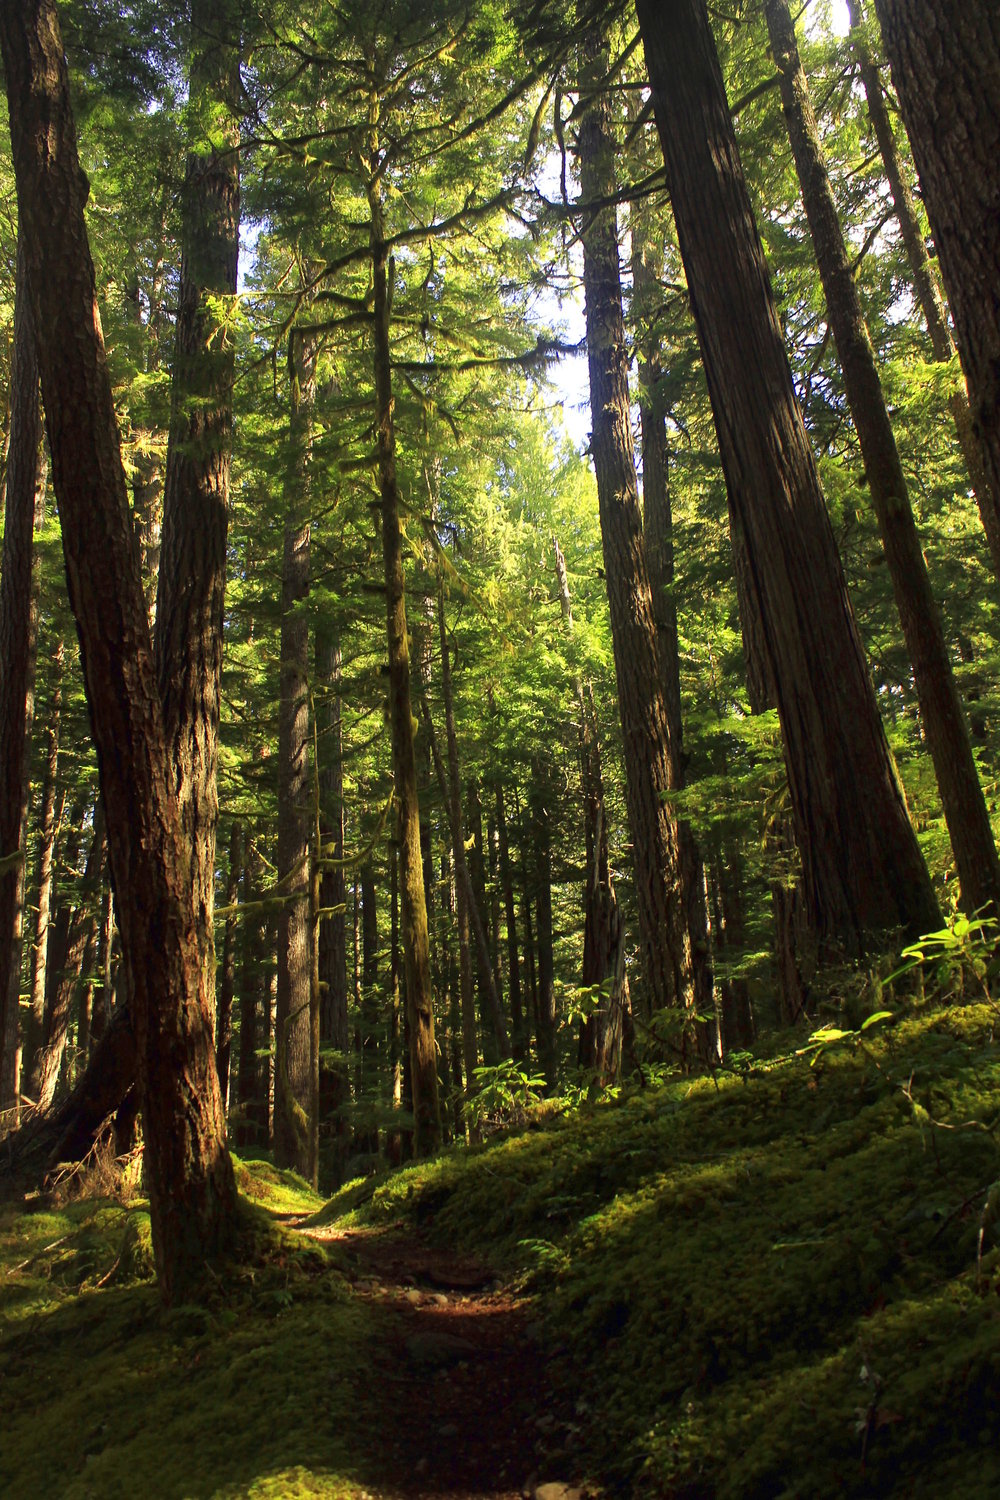 The lush greens and ancient forest along the upper Clackamas River are always welcome on a warm day in May.